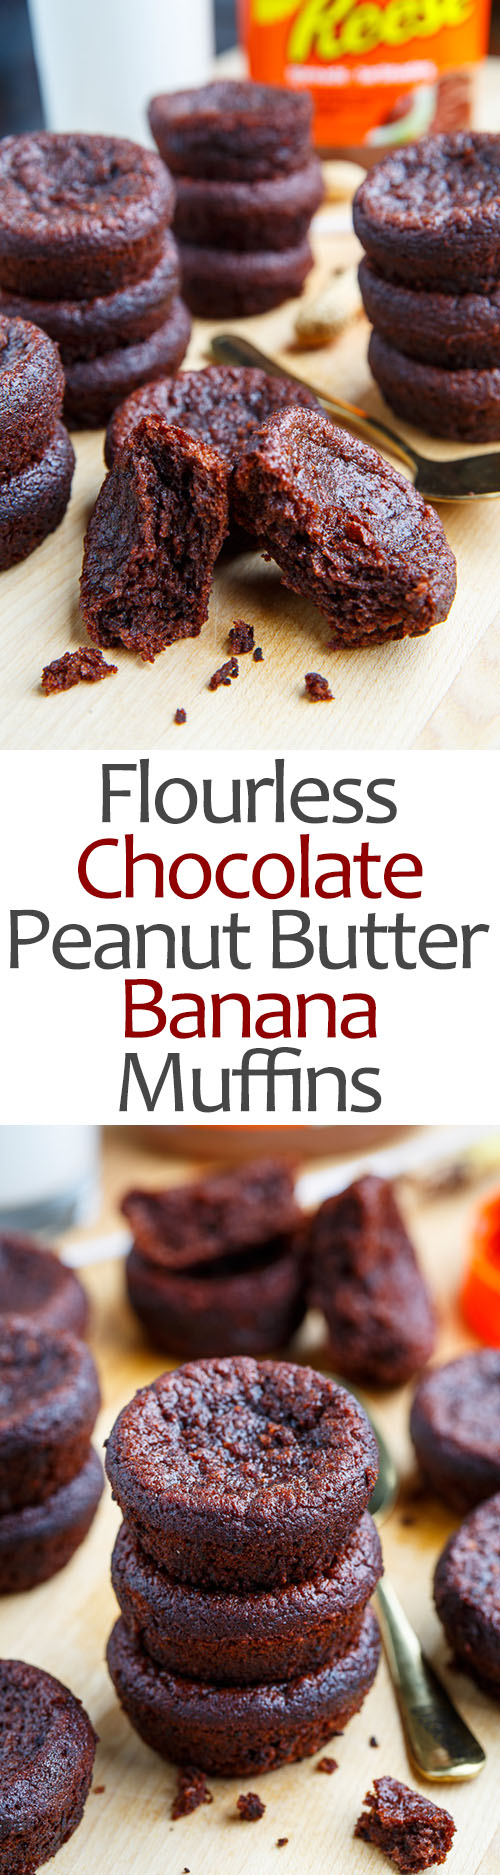 Flourless Chocolate Peanut Butter and Banana Muffins